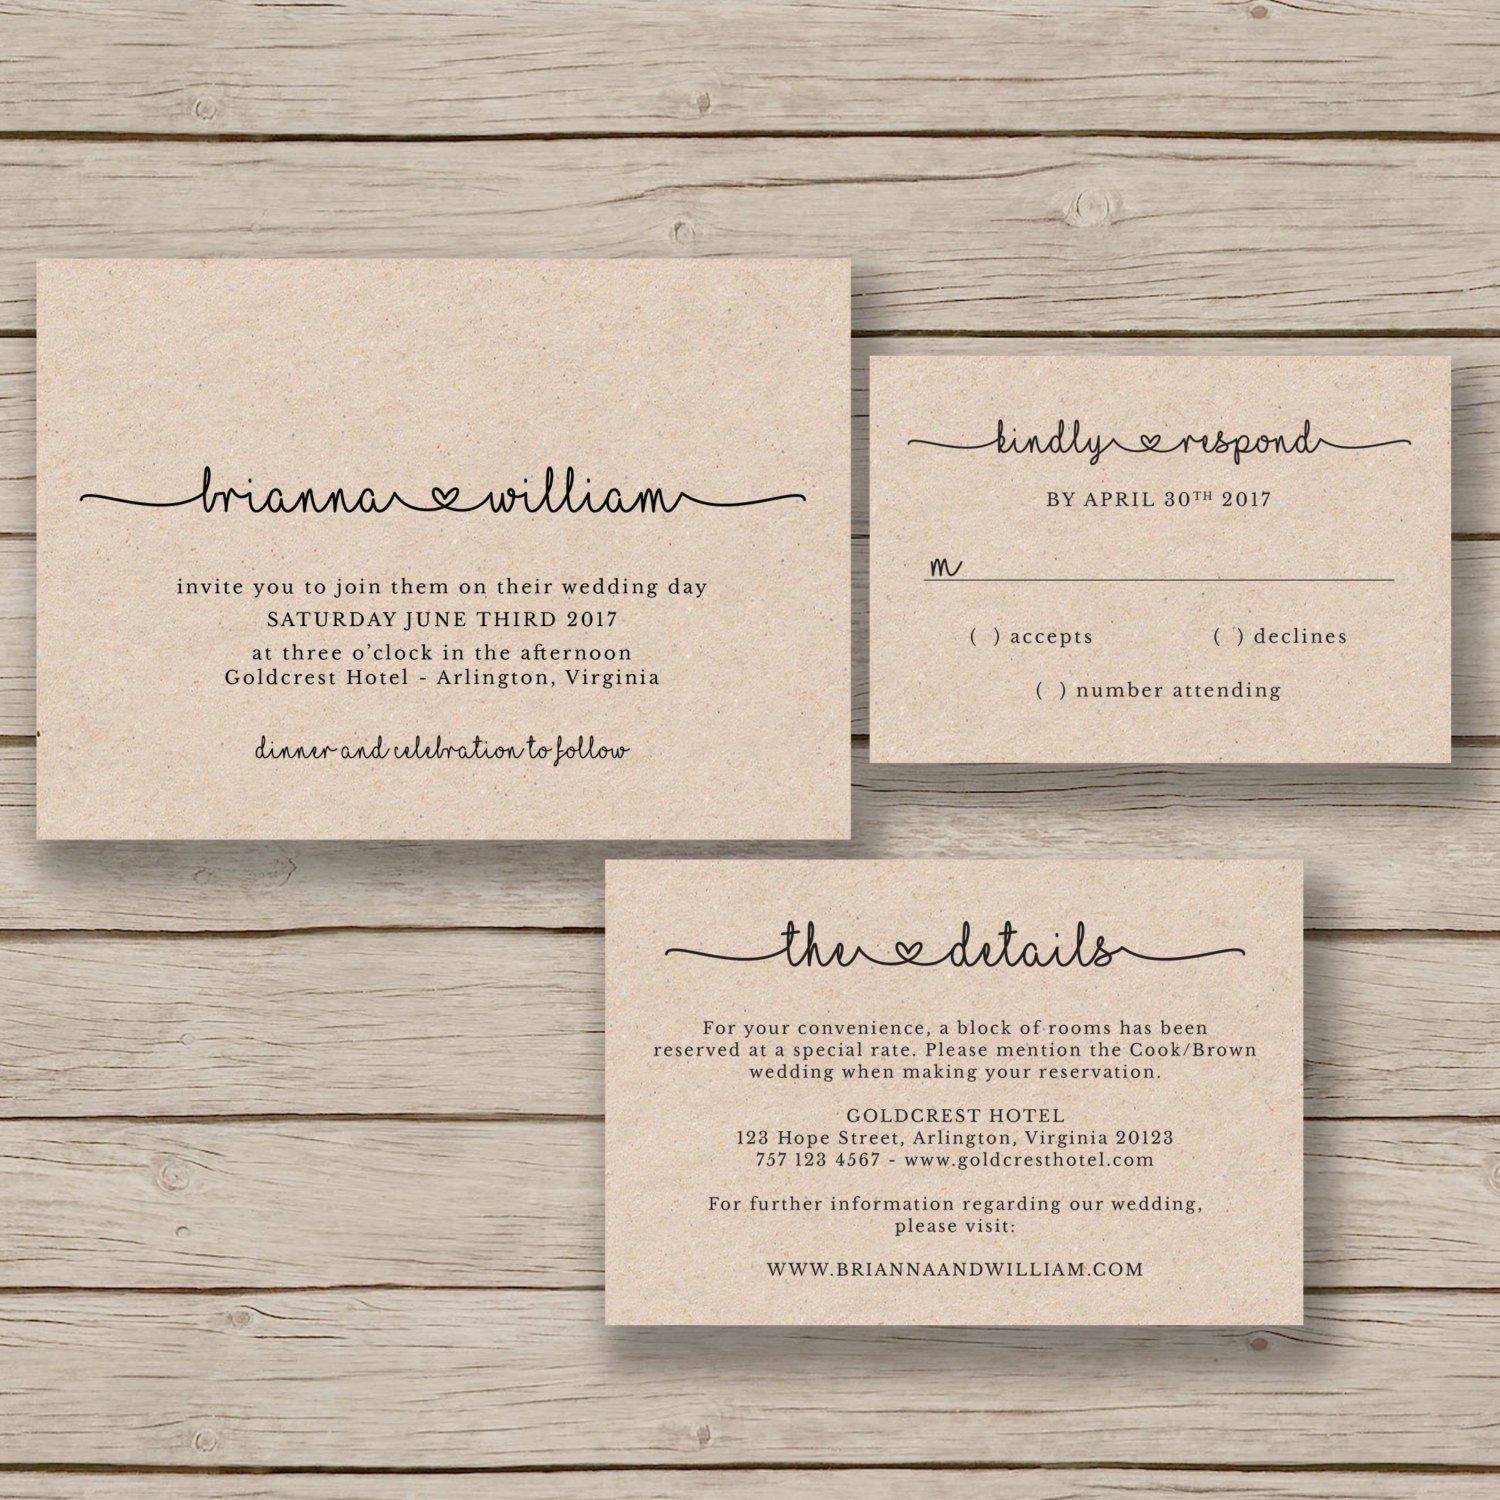 Wedding Invitation Templates: Wedding Invitation Template Rustic Wedding Printable